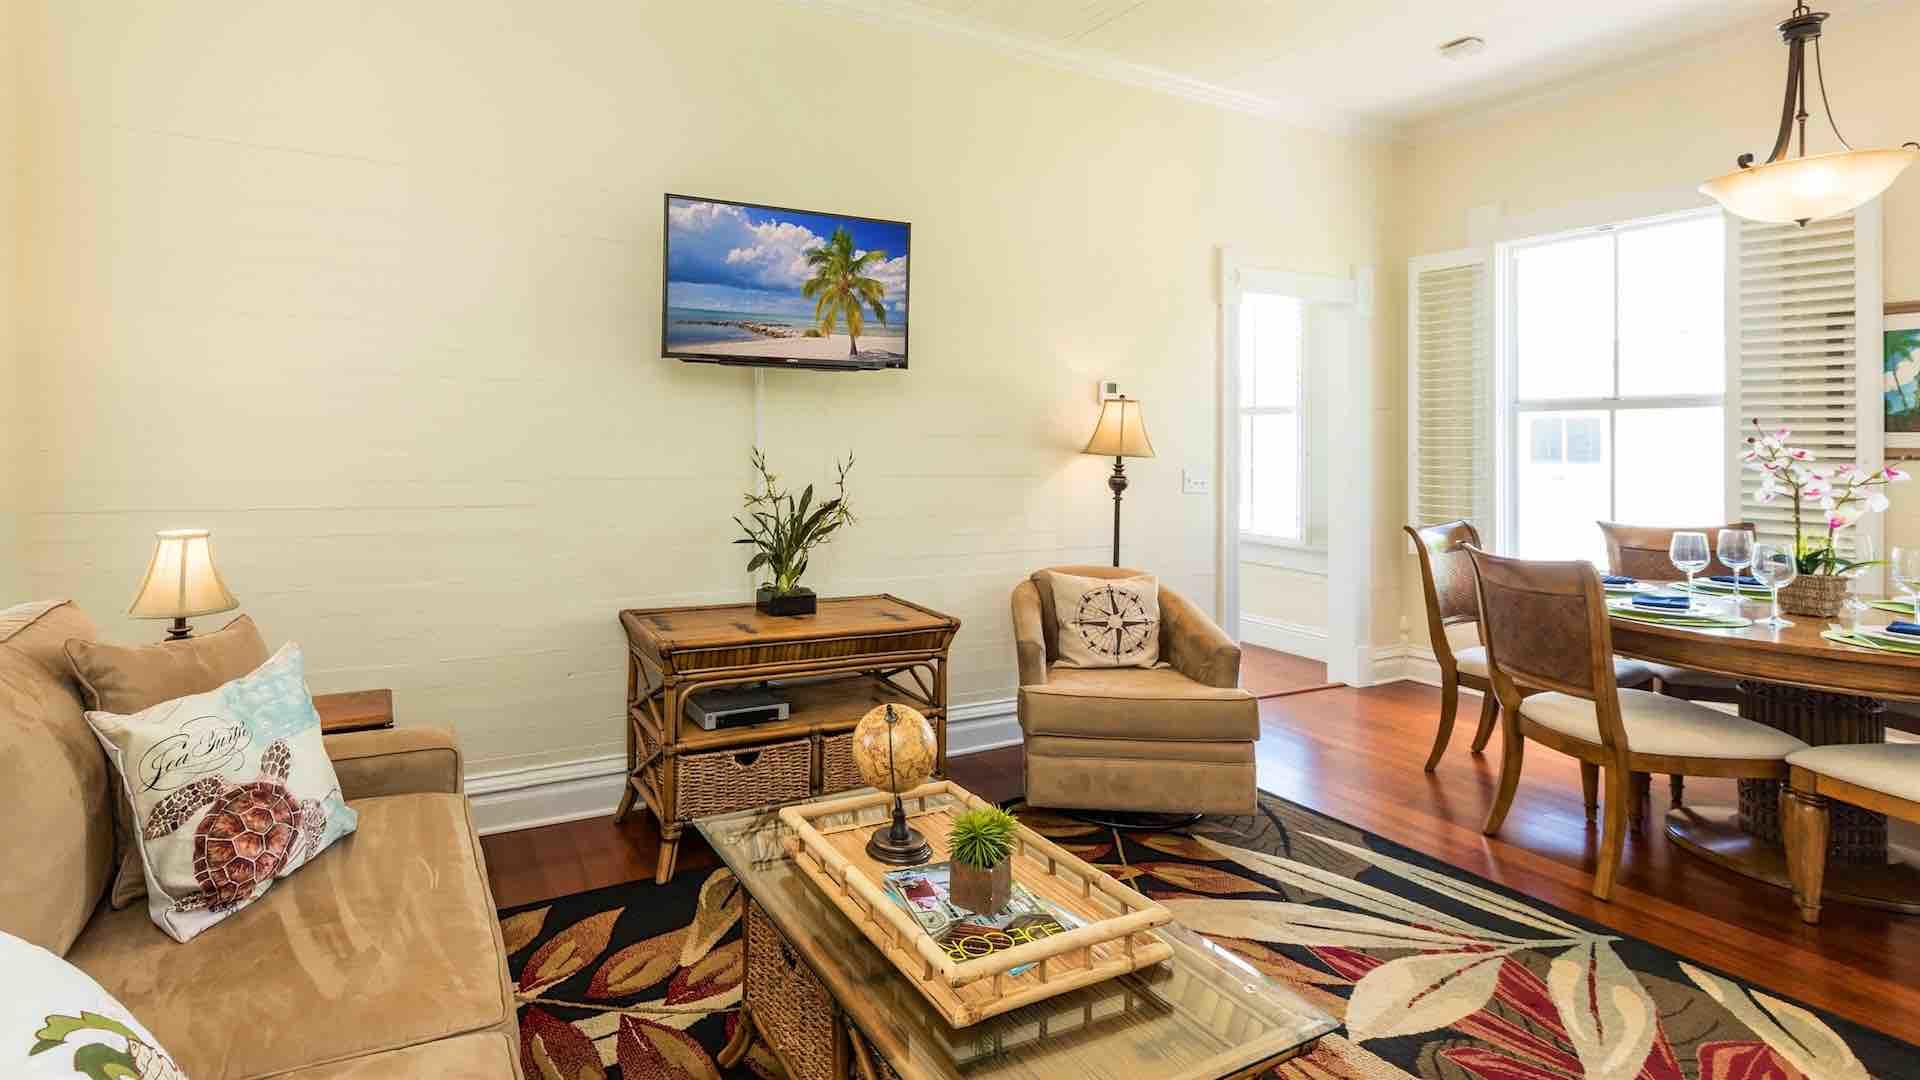 The upstairs condo has a spacious living area, with a large flat screen TV...